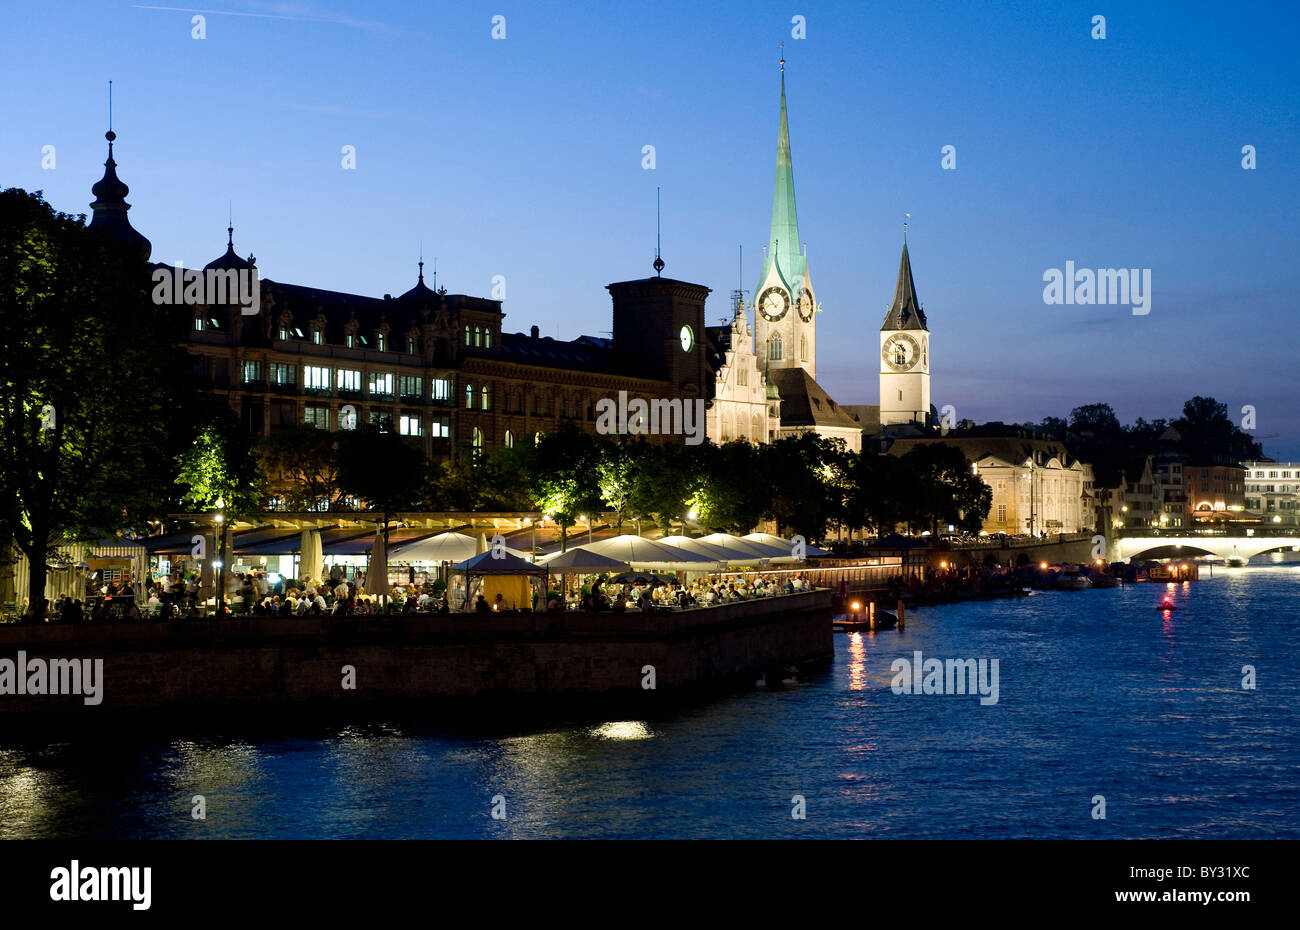 The promenade at Lake Zurich with a view onto the Old Town, Zurich, Switzerland - Stock Image